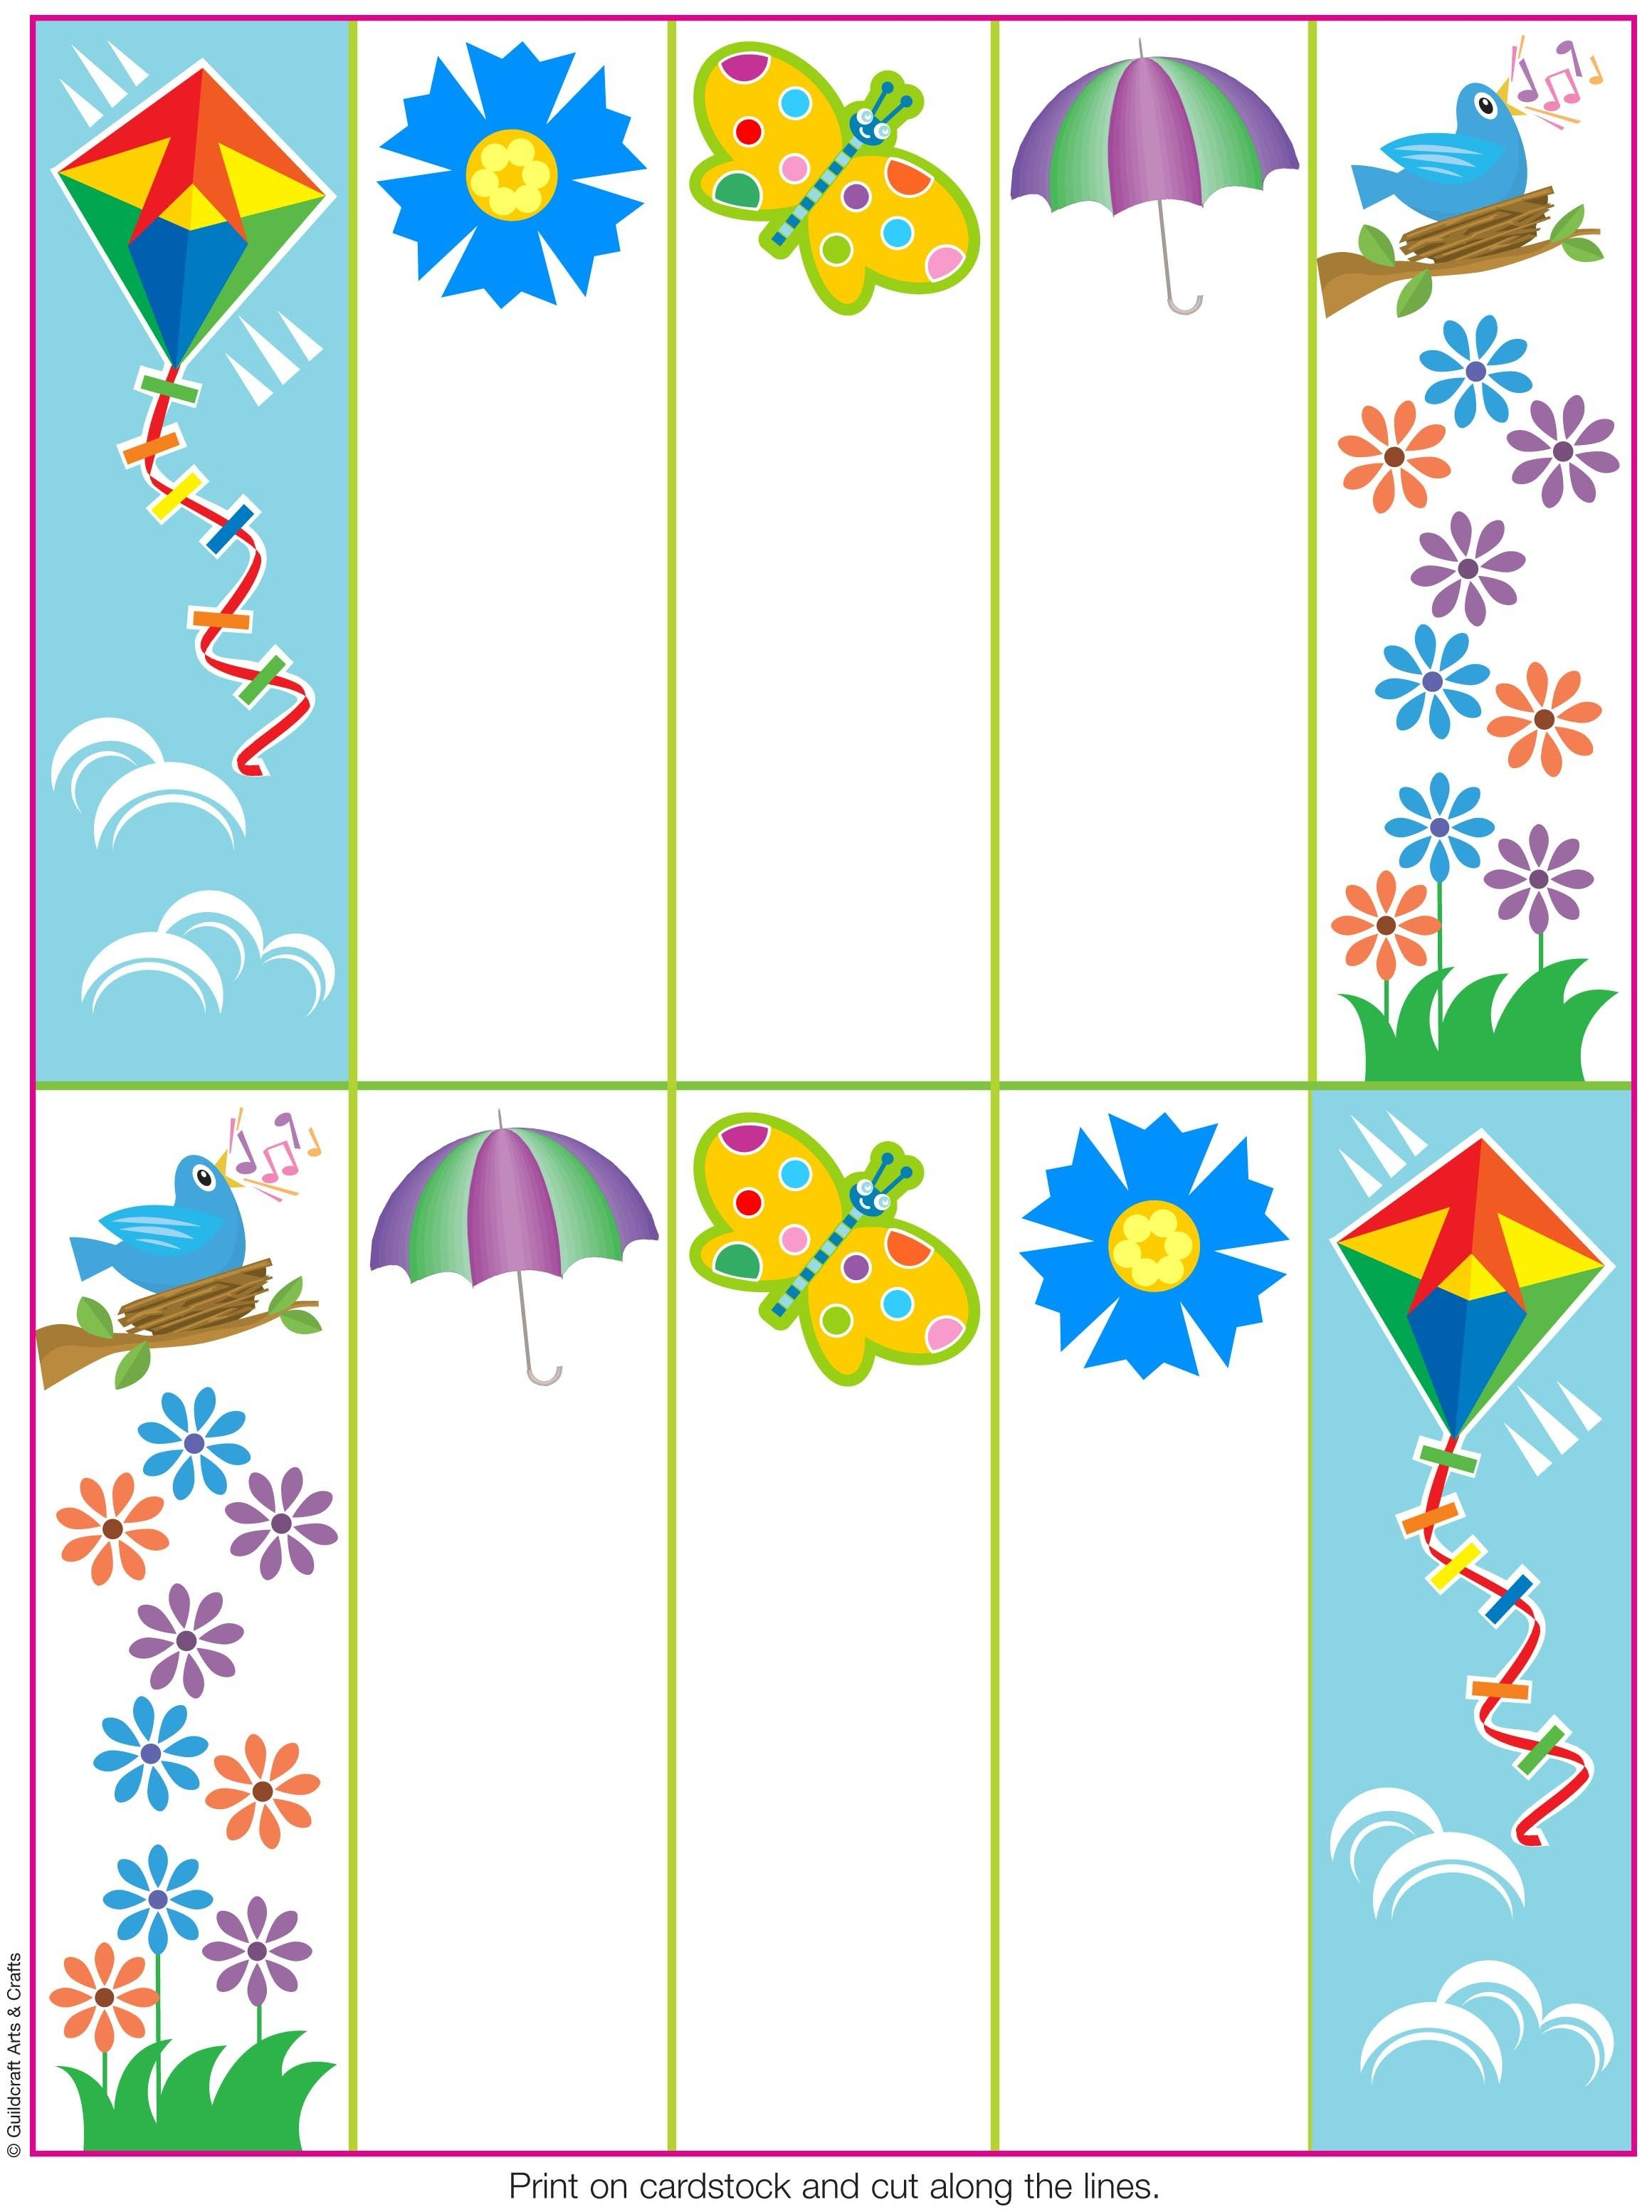 Pinguildcraft Arts & Crafts On Printables | Bookmarks, How To - Free Printable Spring Bookmarks